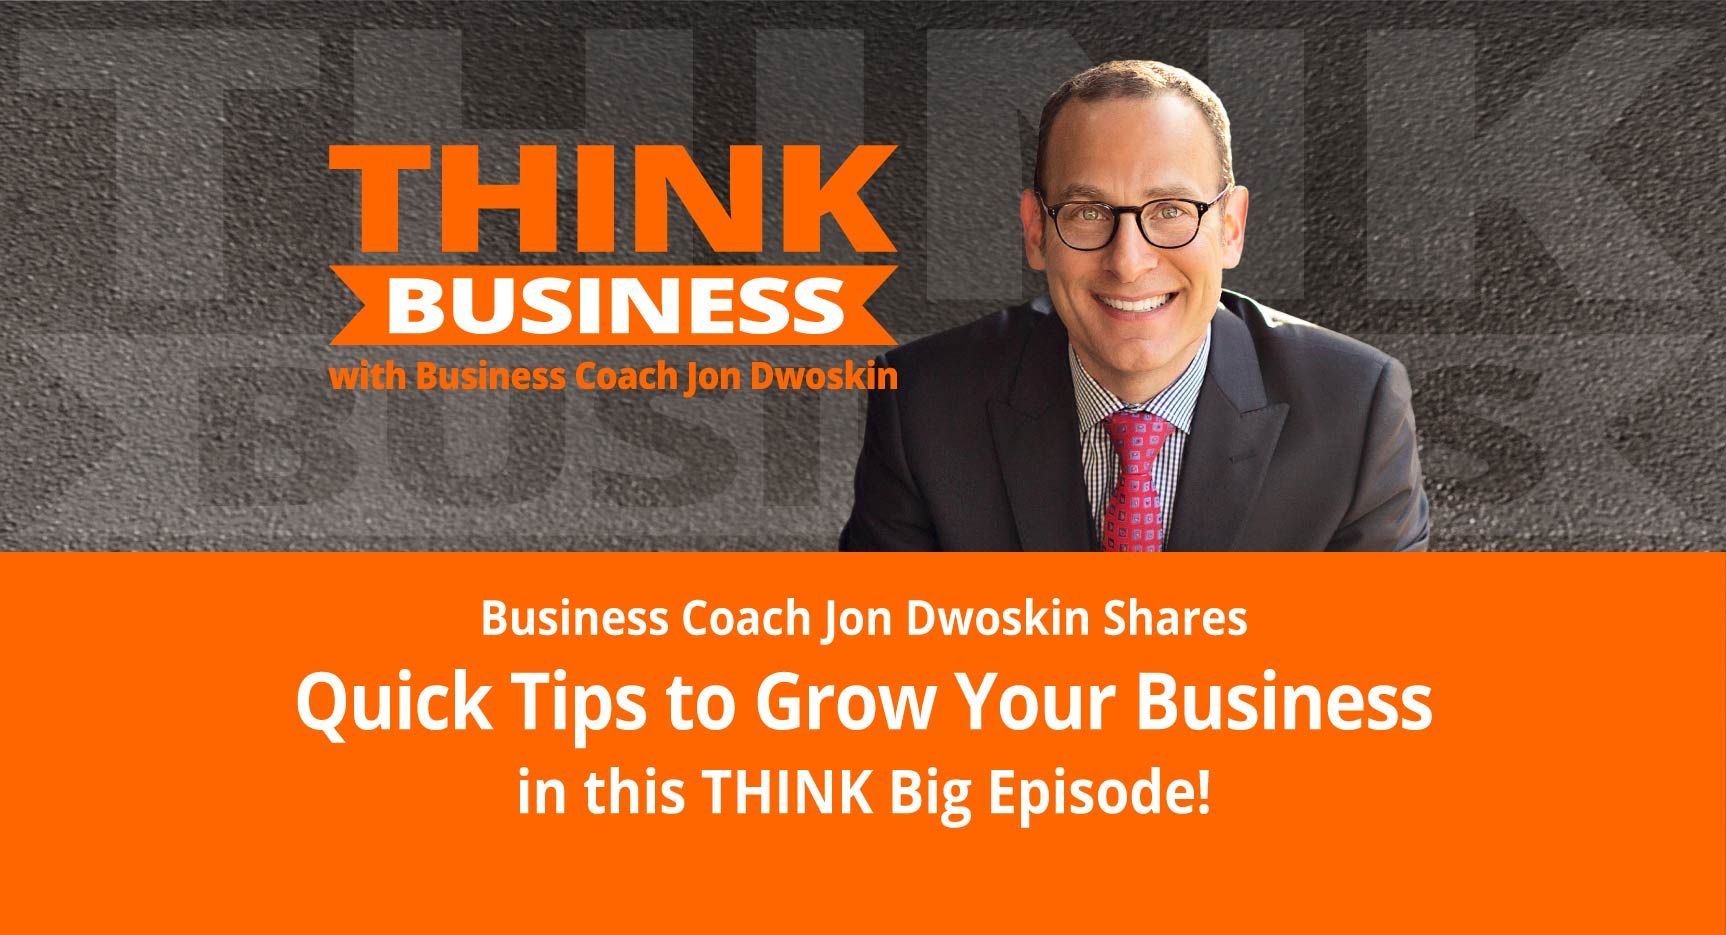 THINK Business Podcast: Today's Quick Tip: The Culture in Your Business